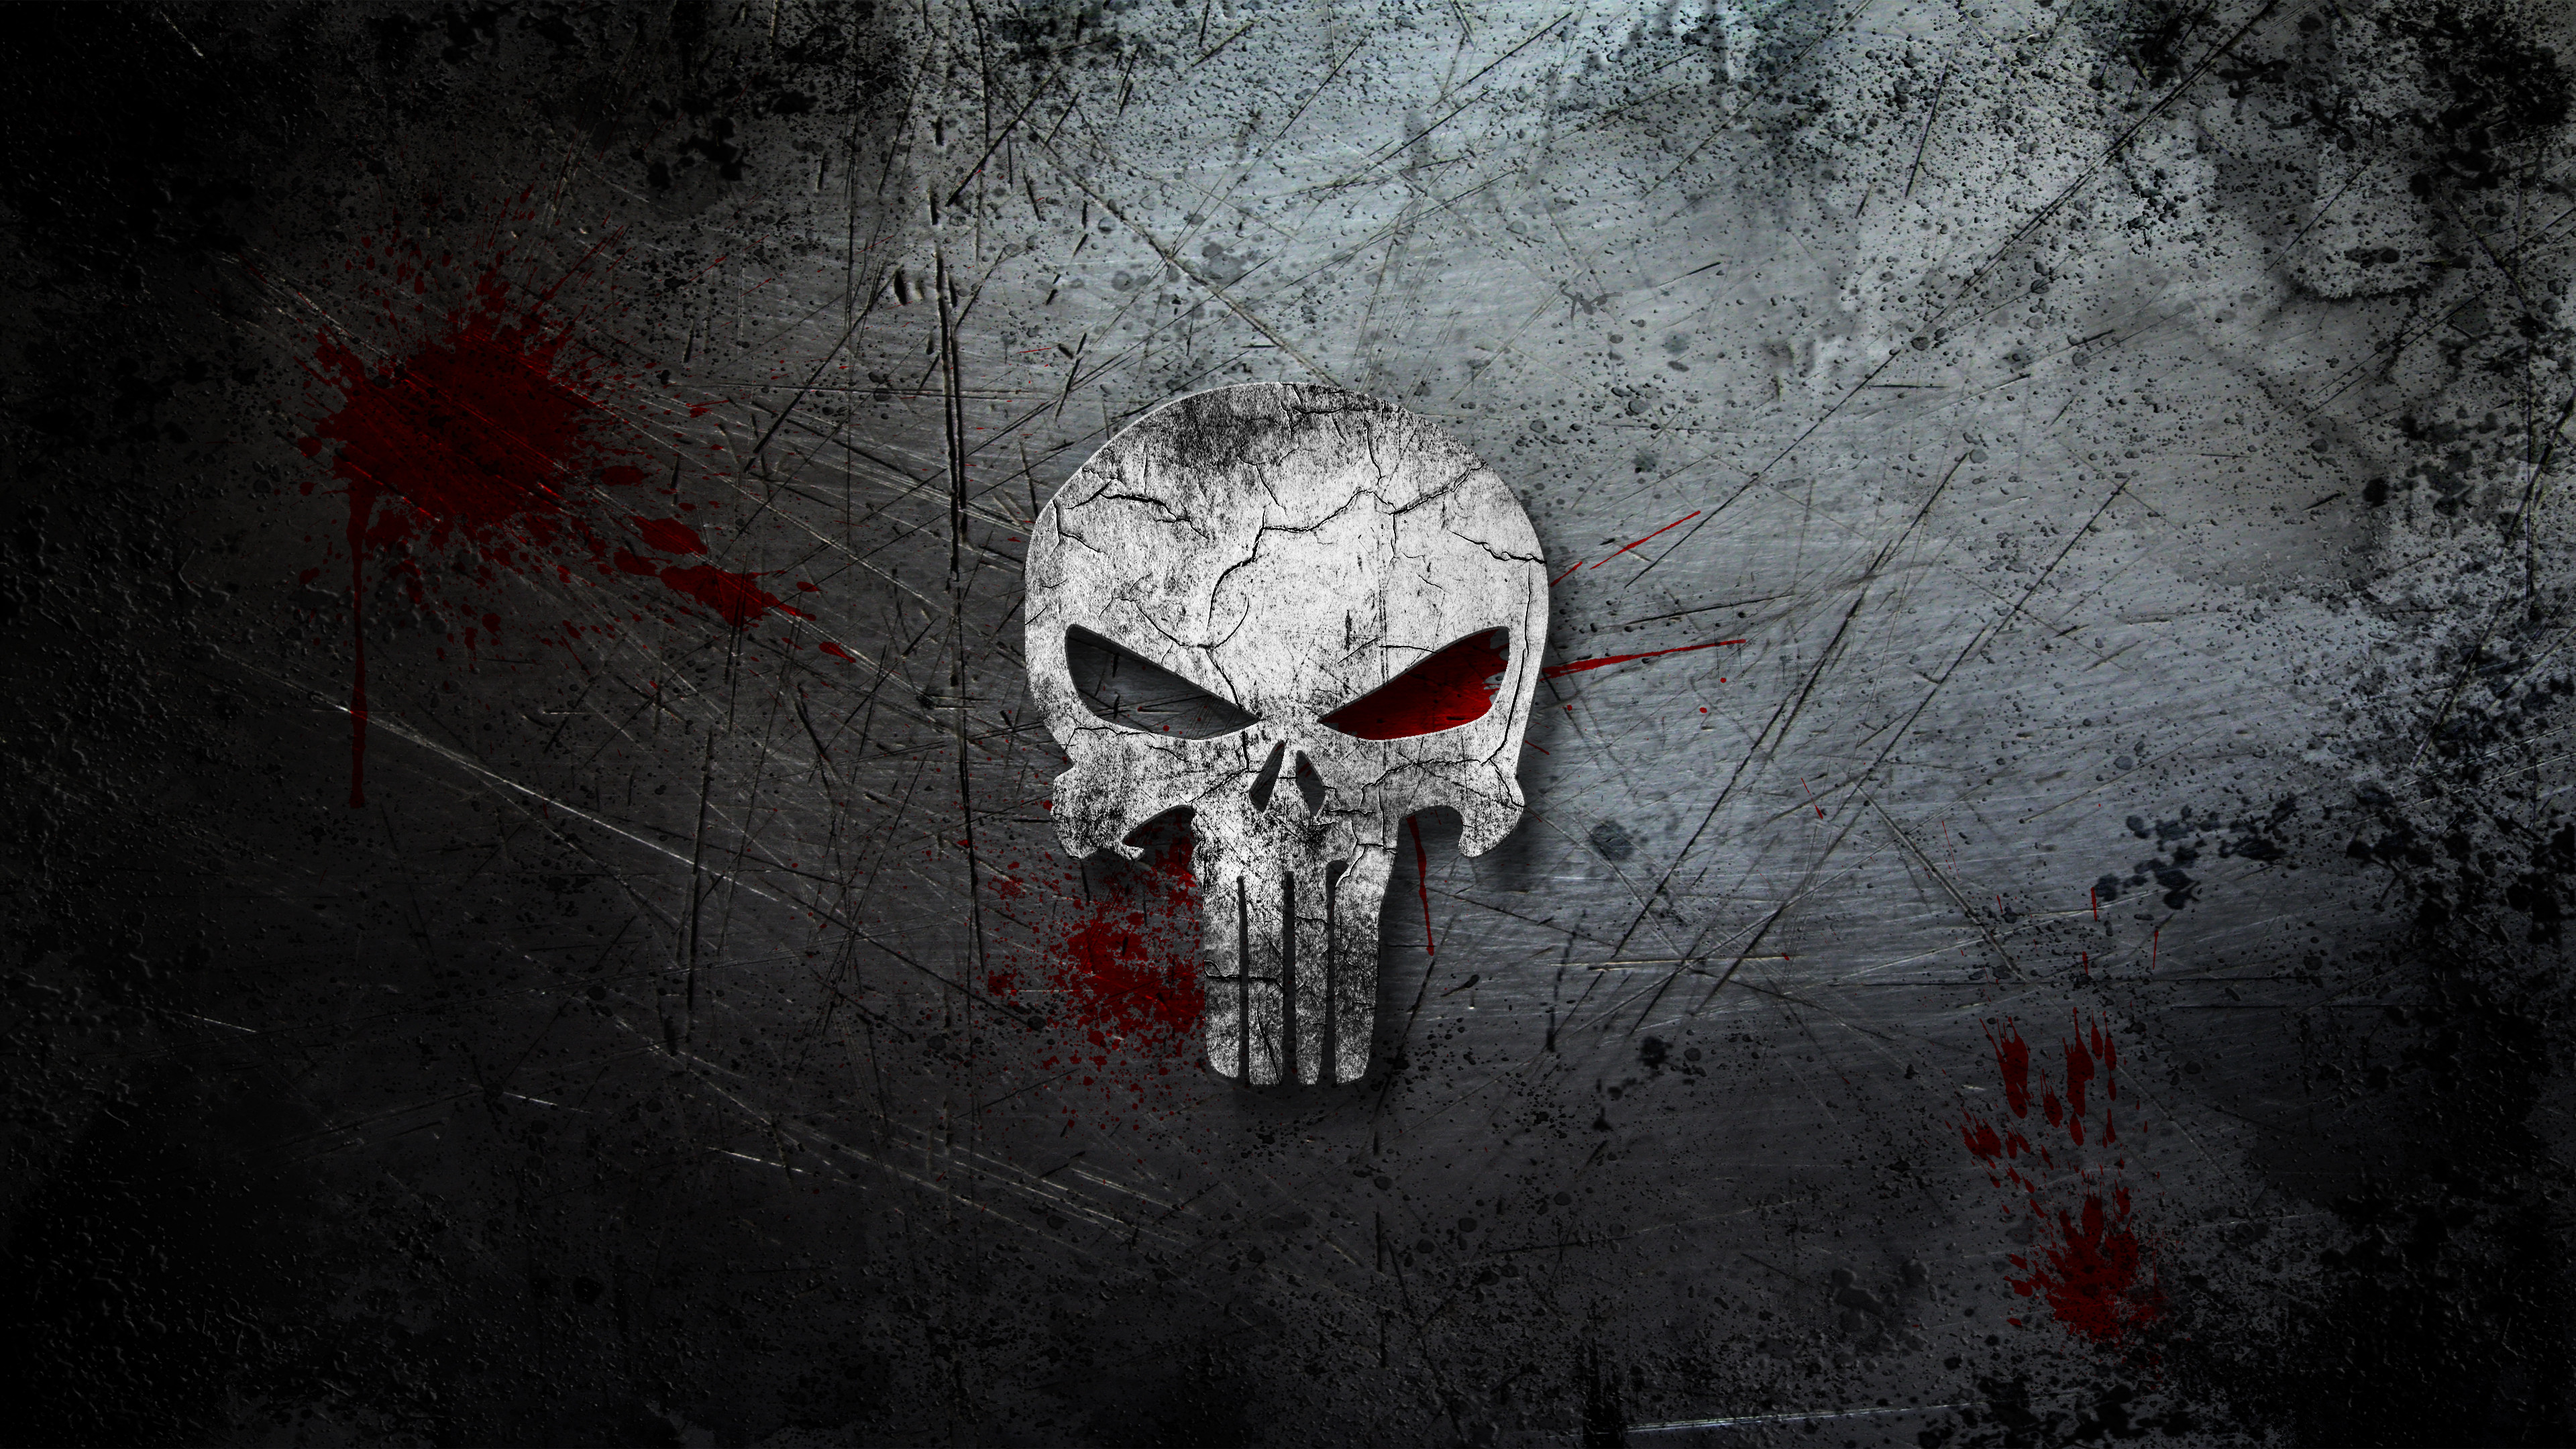 The Punisher Computer Wallpapers Desktop Backgrounds 3840x2160 ID 3840x2160